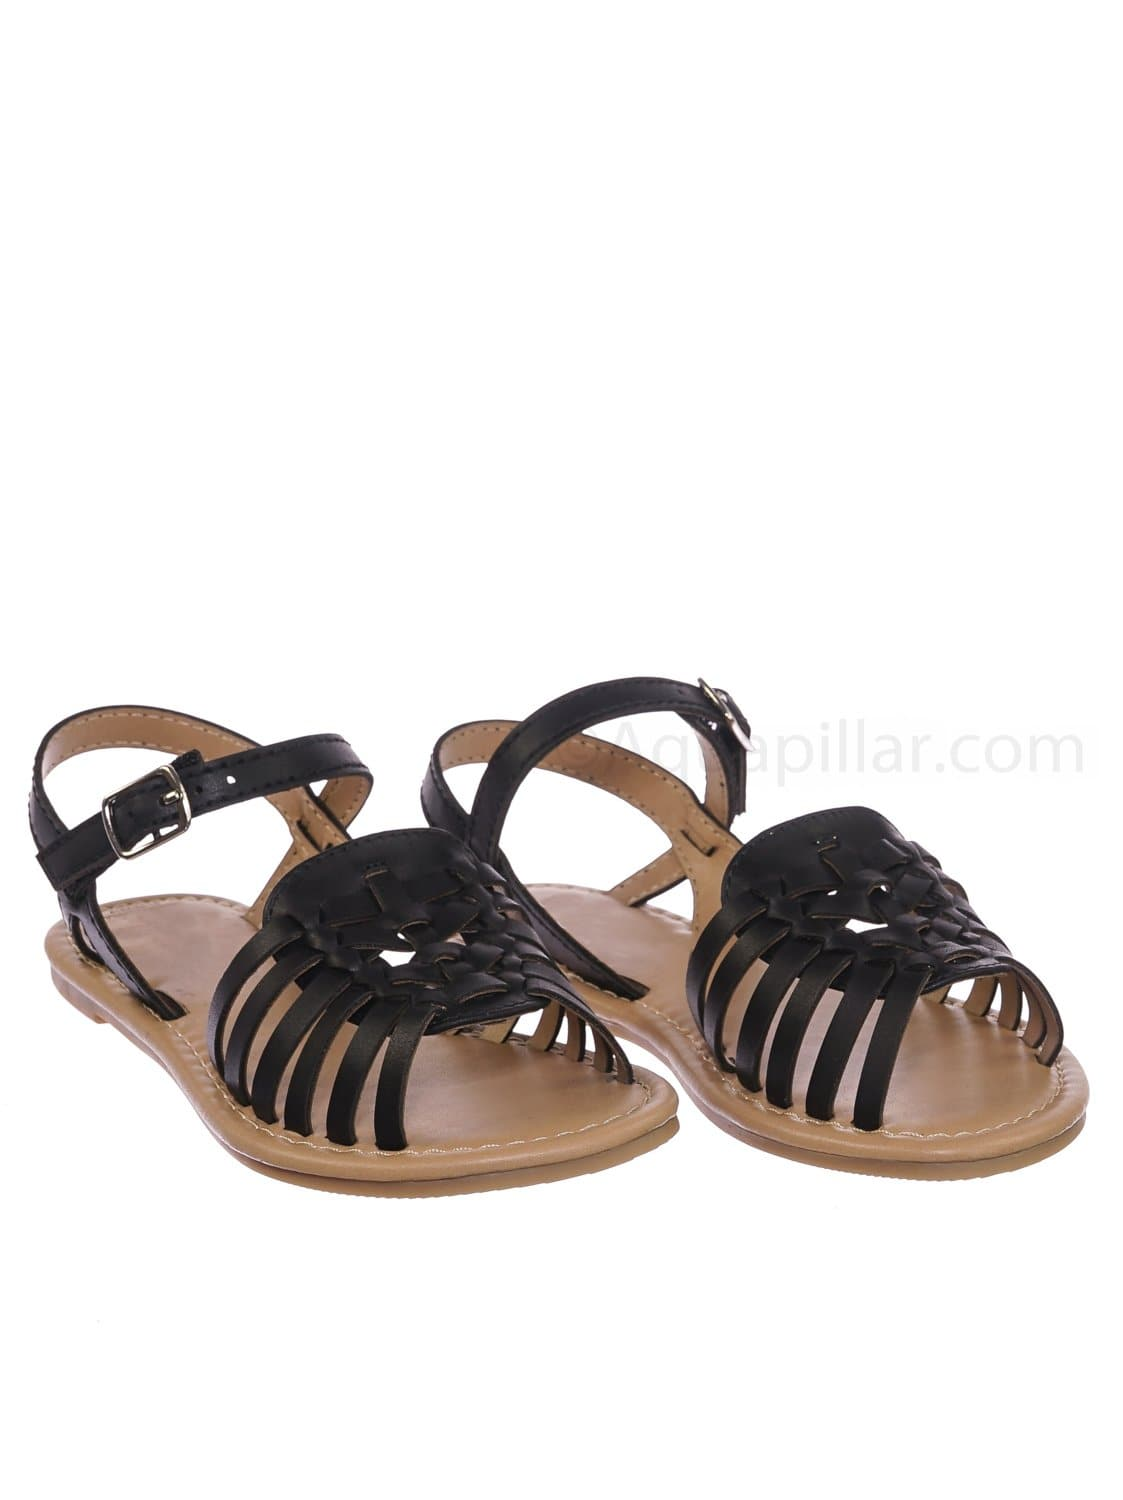 Milene2 Black Kids Woven Fisherman Huarache Flat sandal - Girl Children Open Toe Shoes